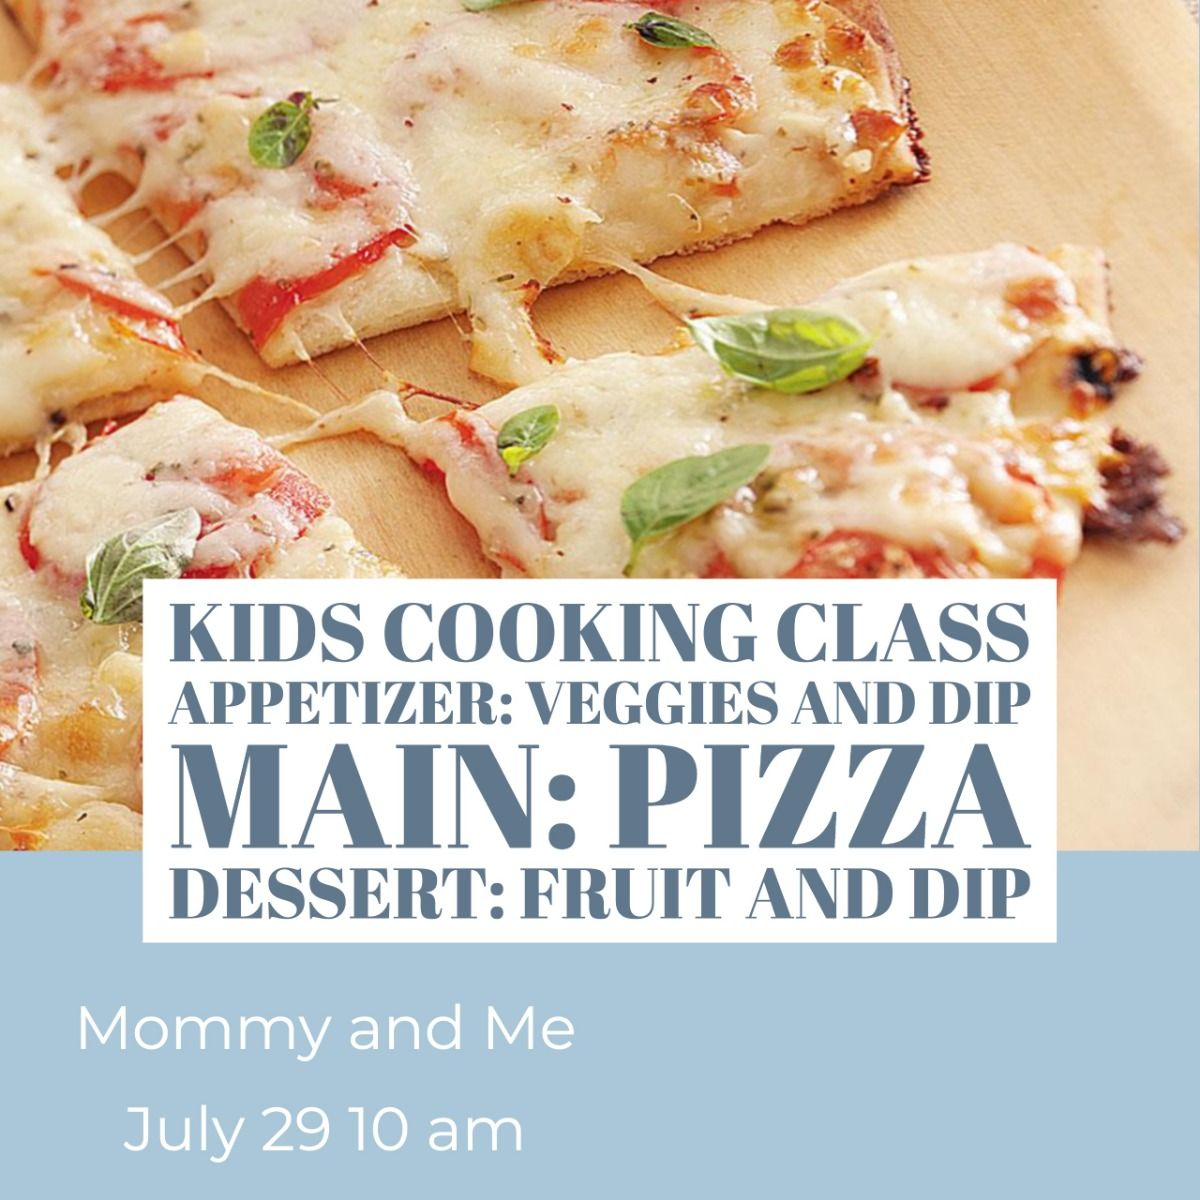 Epicure Kids Cooking Party Cooking Classes For Kids Cooking Epicure